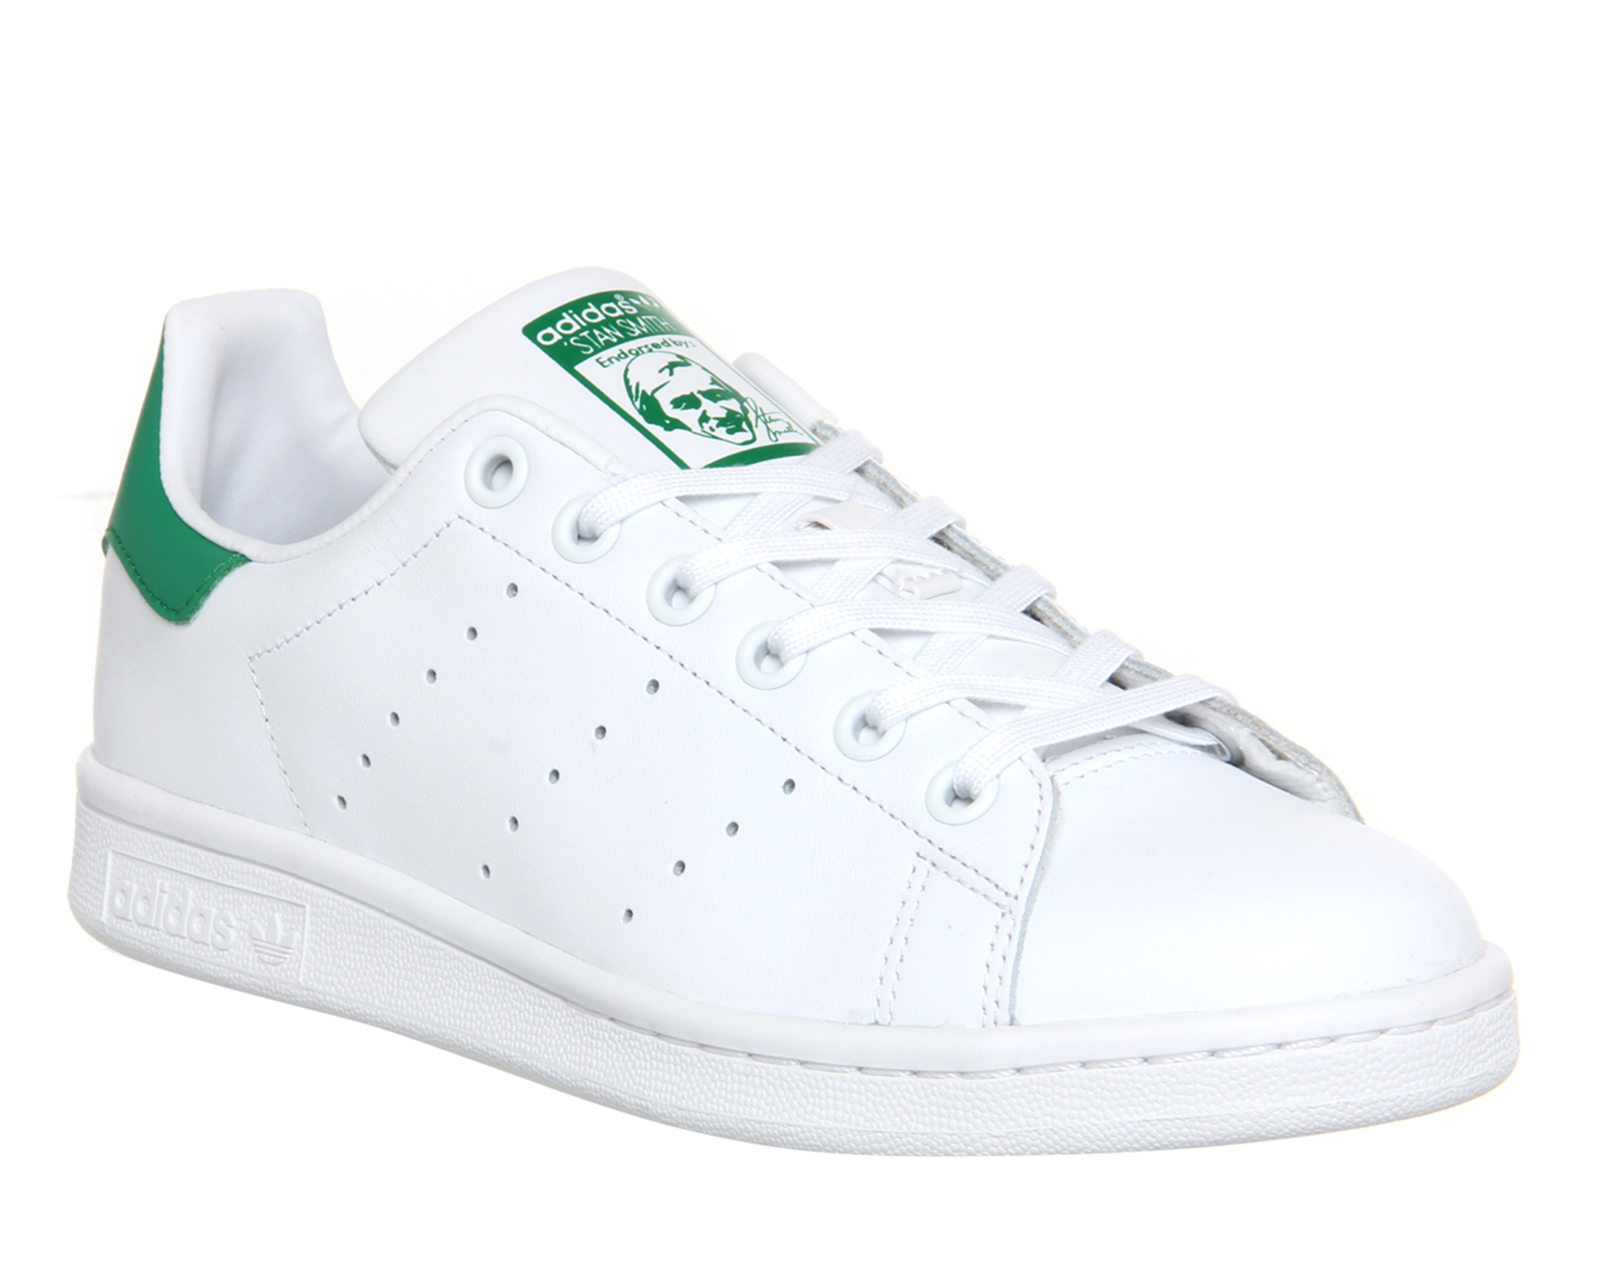 Mens-Adidas-Stan-Smith-CORE-WHITE-GREEN-Trainers-